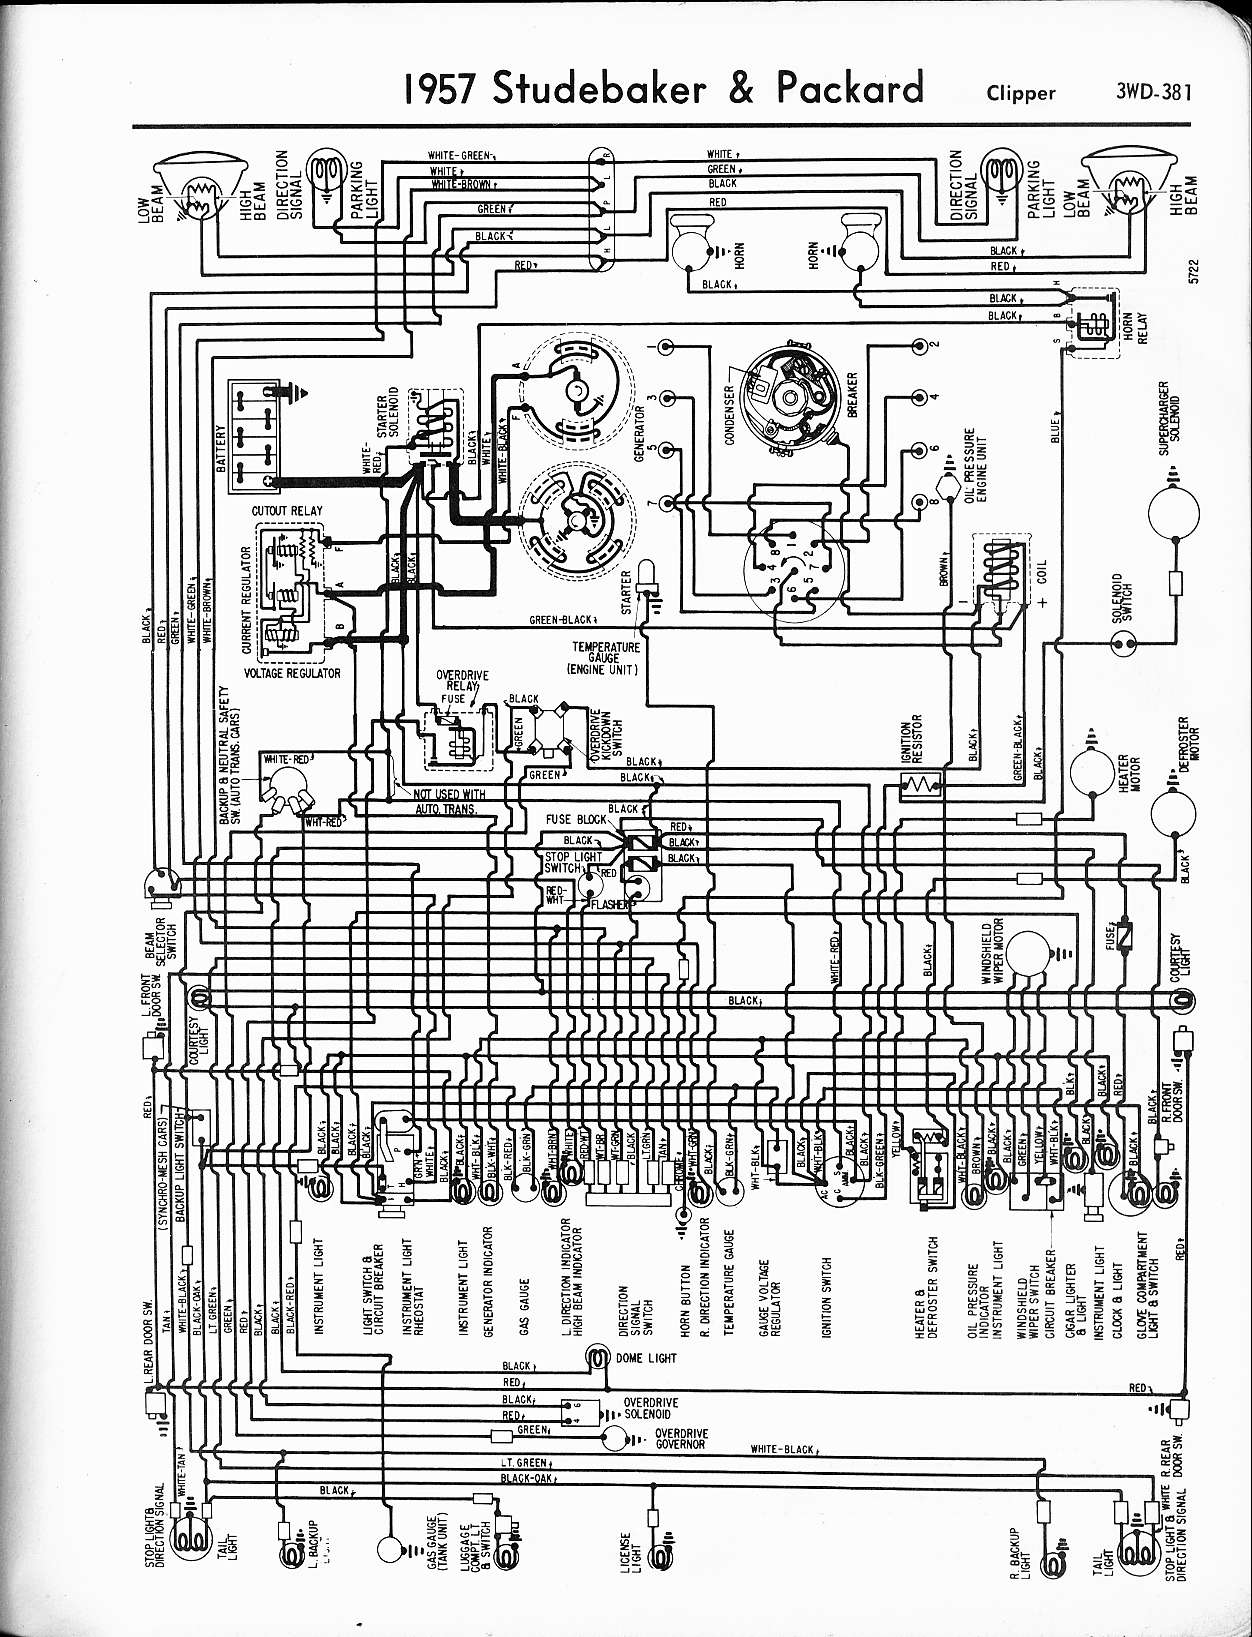 47 Ford Sedan Wiring Diagram Circuit Schematic Auto Harness Packard Diagrams The Old Car Manual Project Ranger